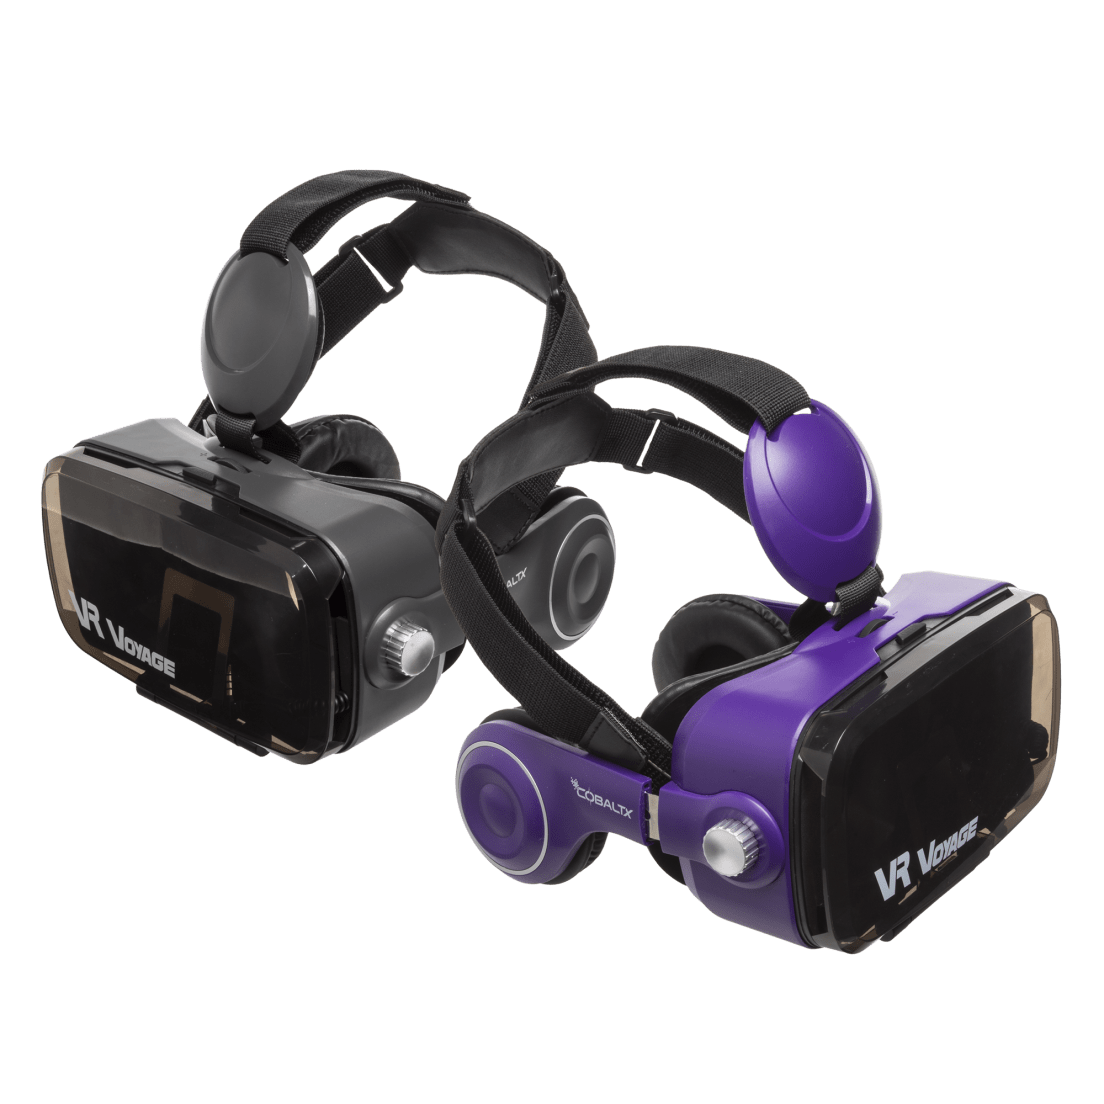 Vr Voyage 360 Virtual Reality Headset With Built In Headphones